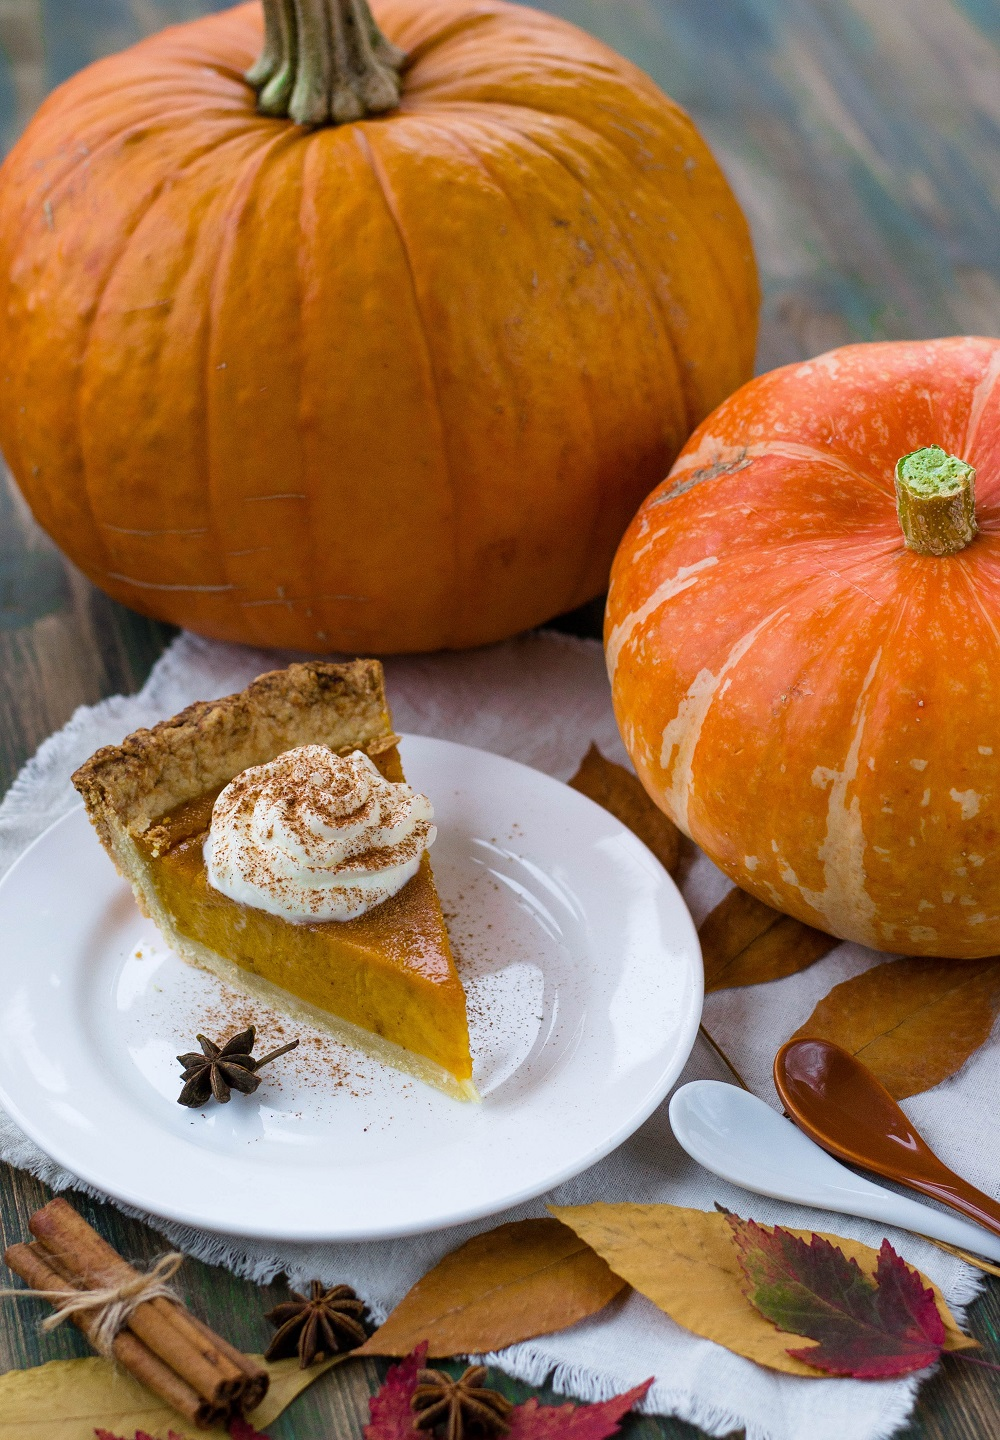 Simply organic, spiced pumpkin pie recipe